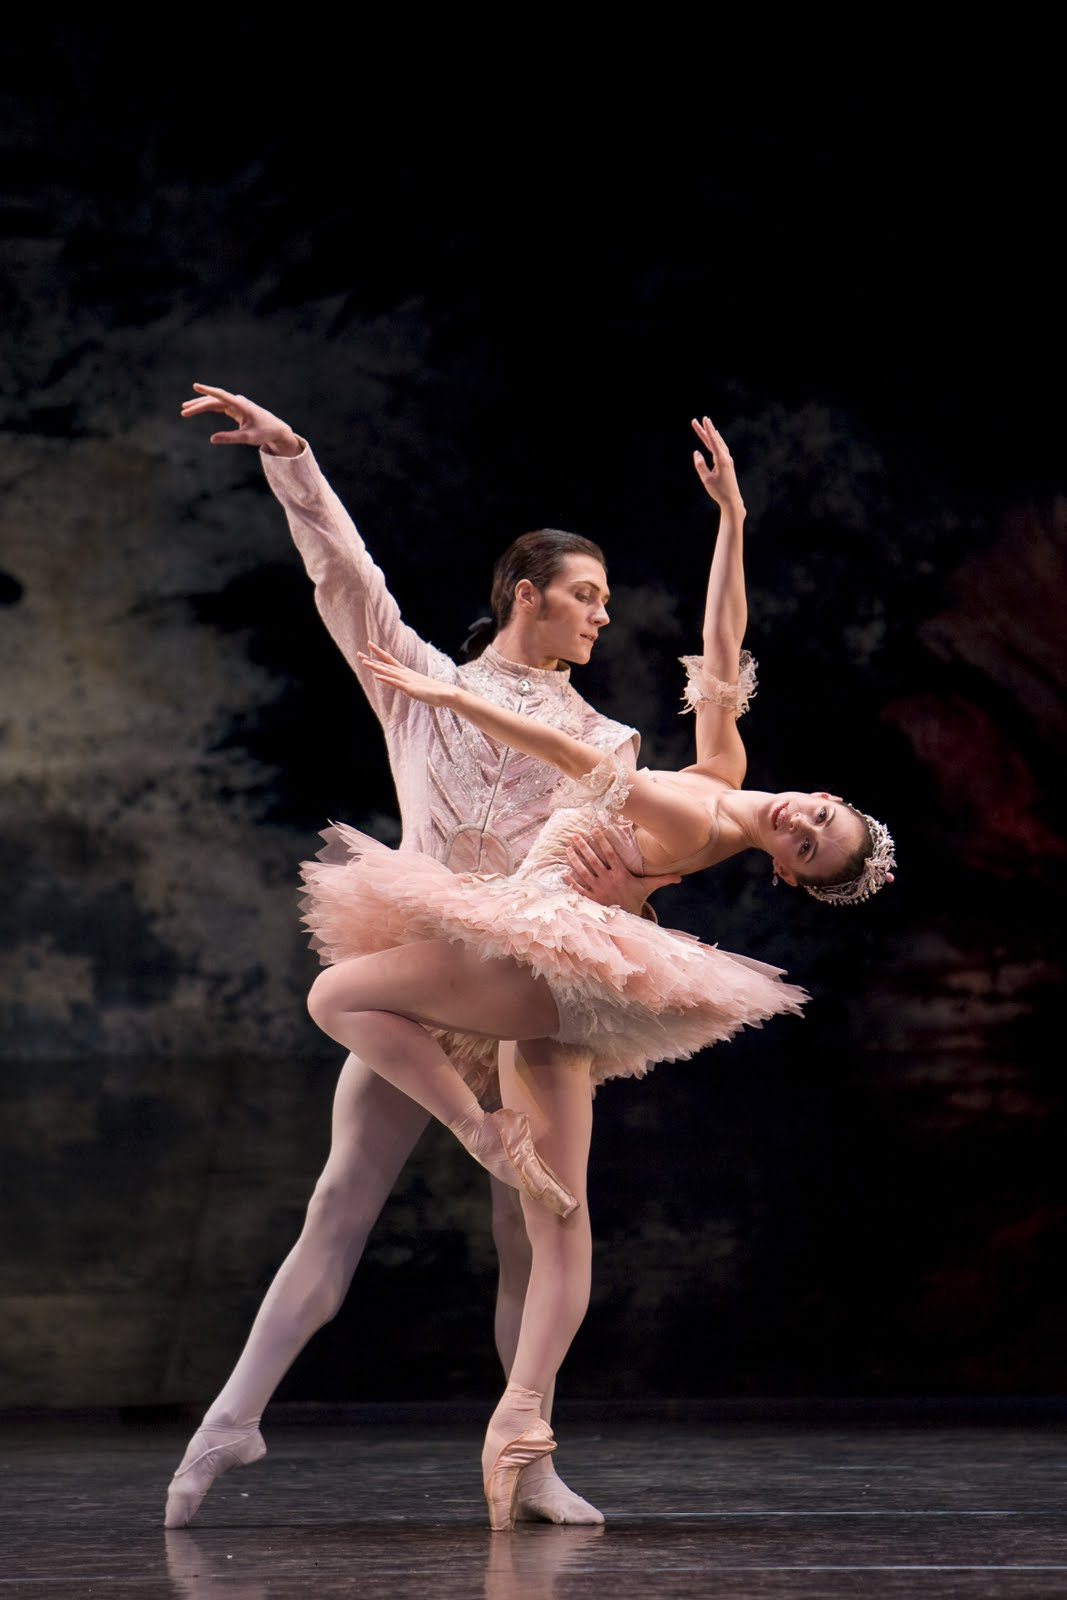 two dancers in pink tutus